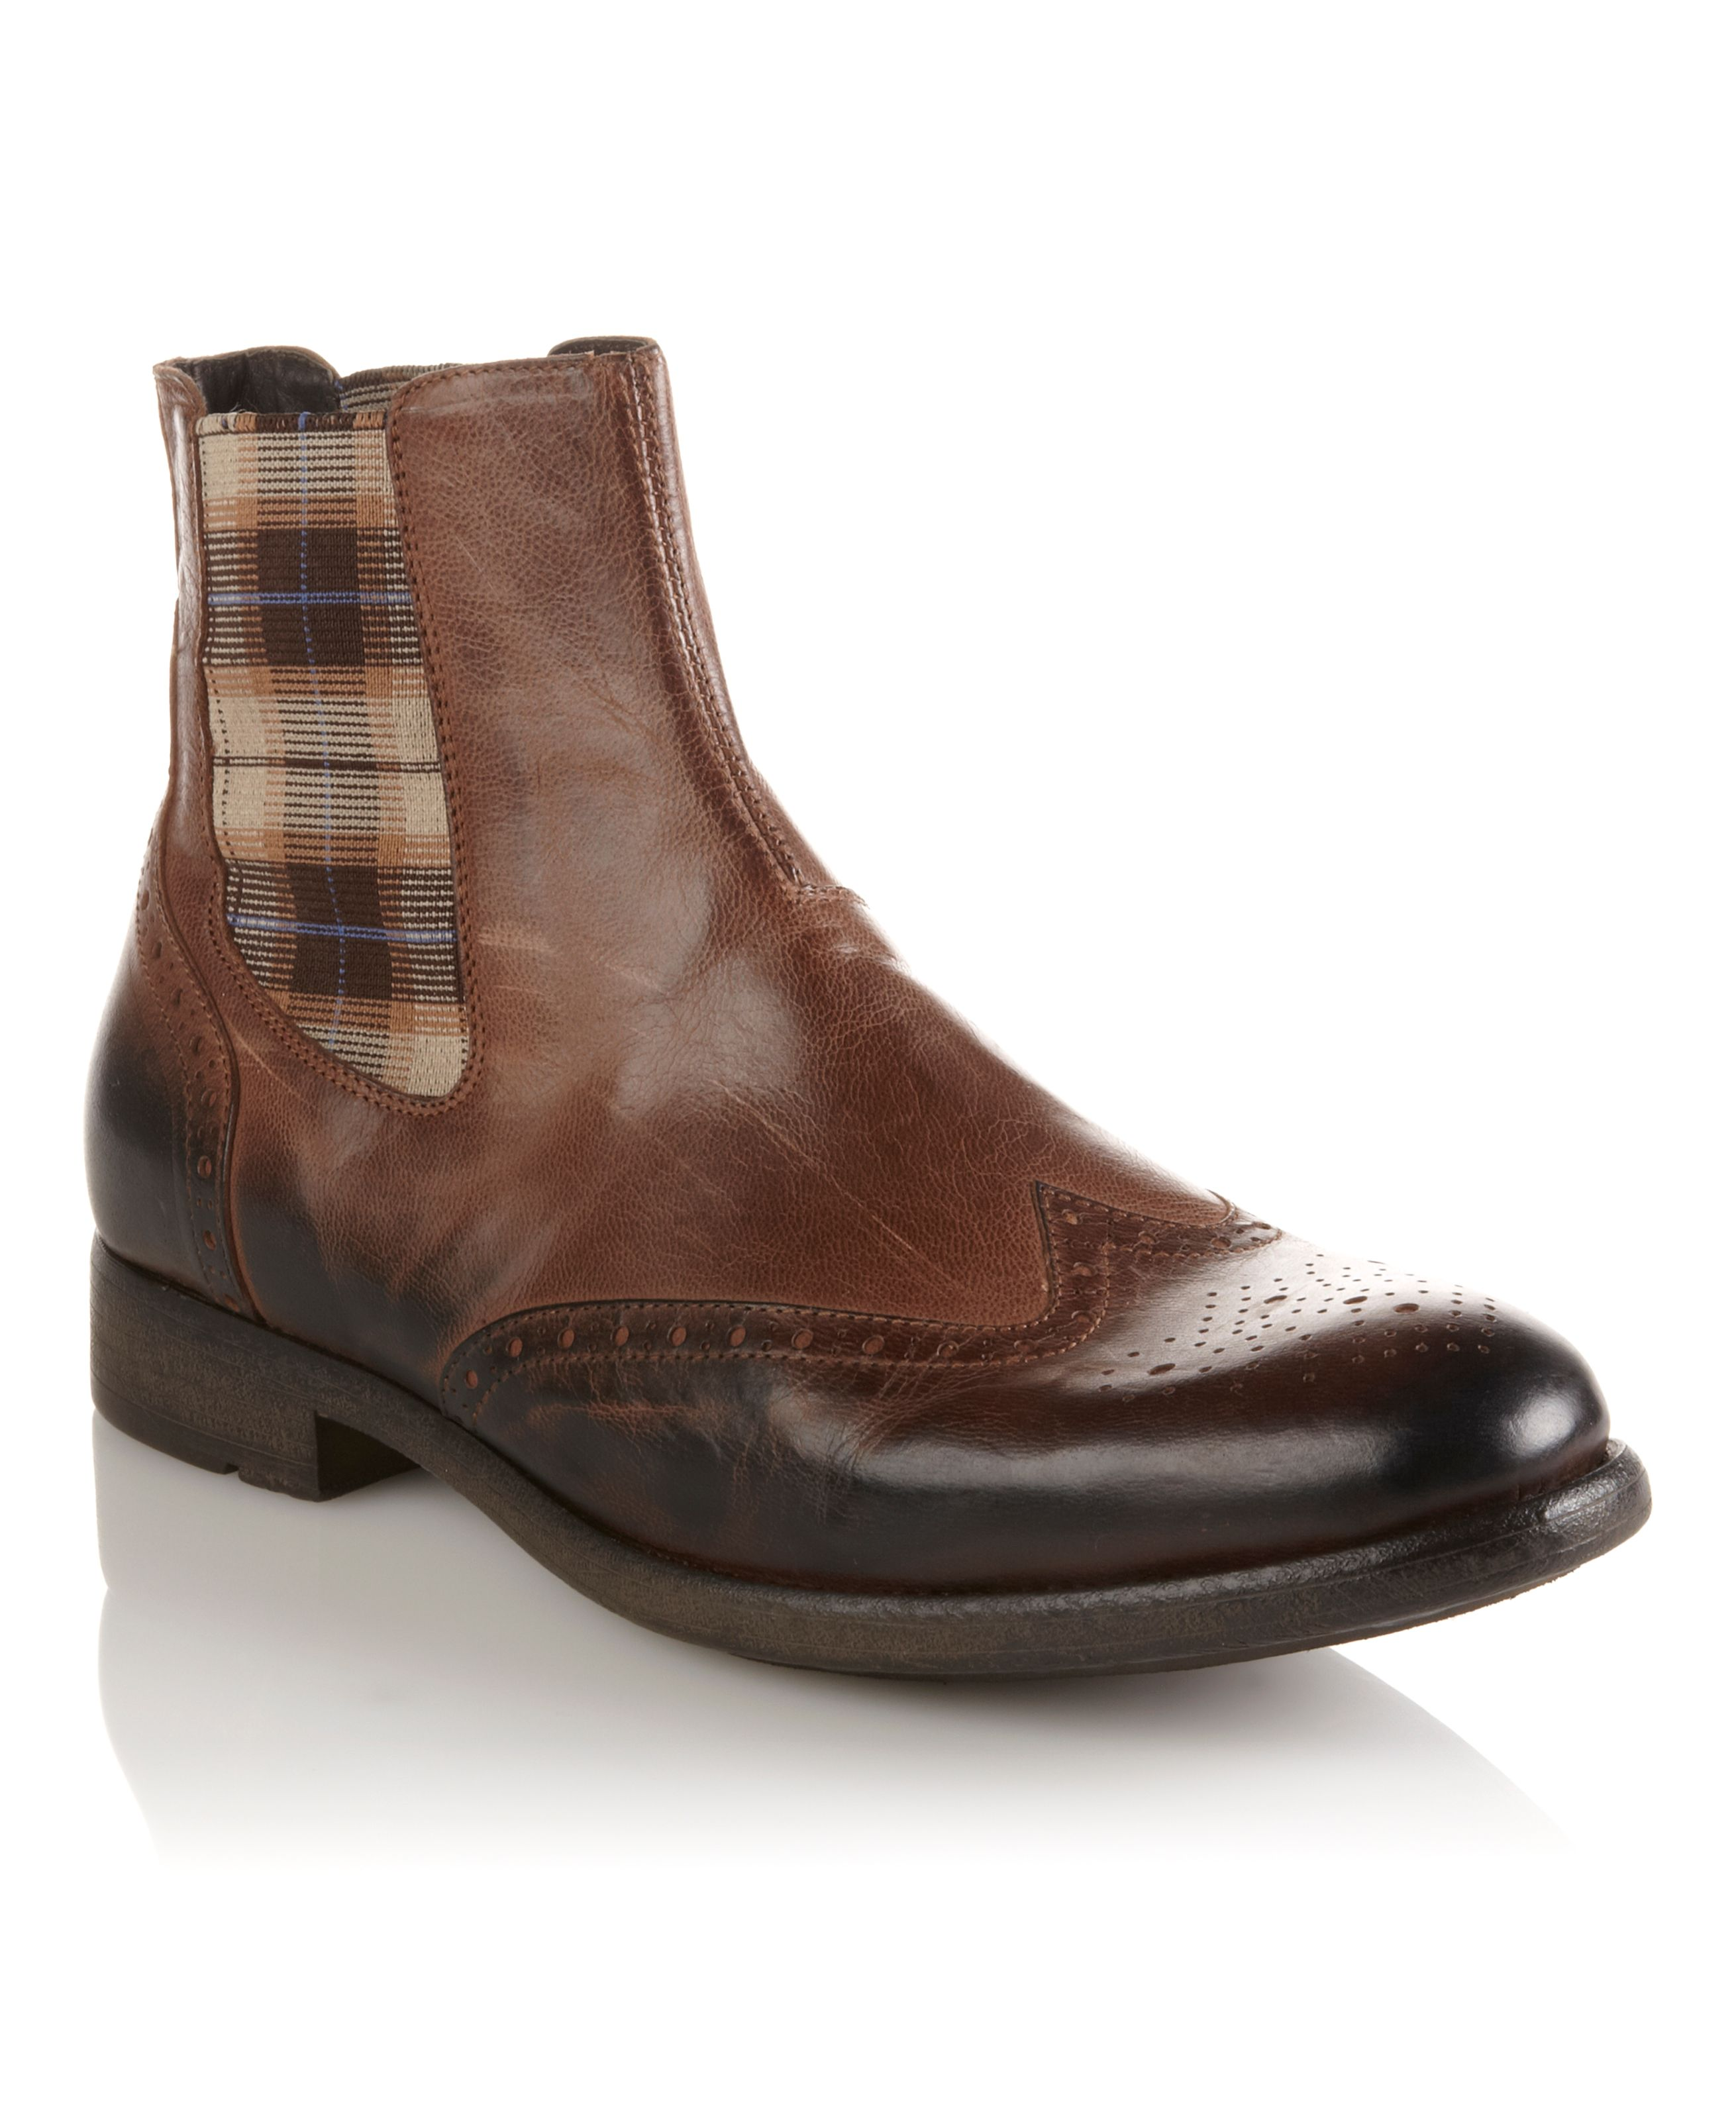 Bertie Crowd round toe zip boots